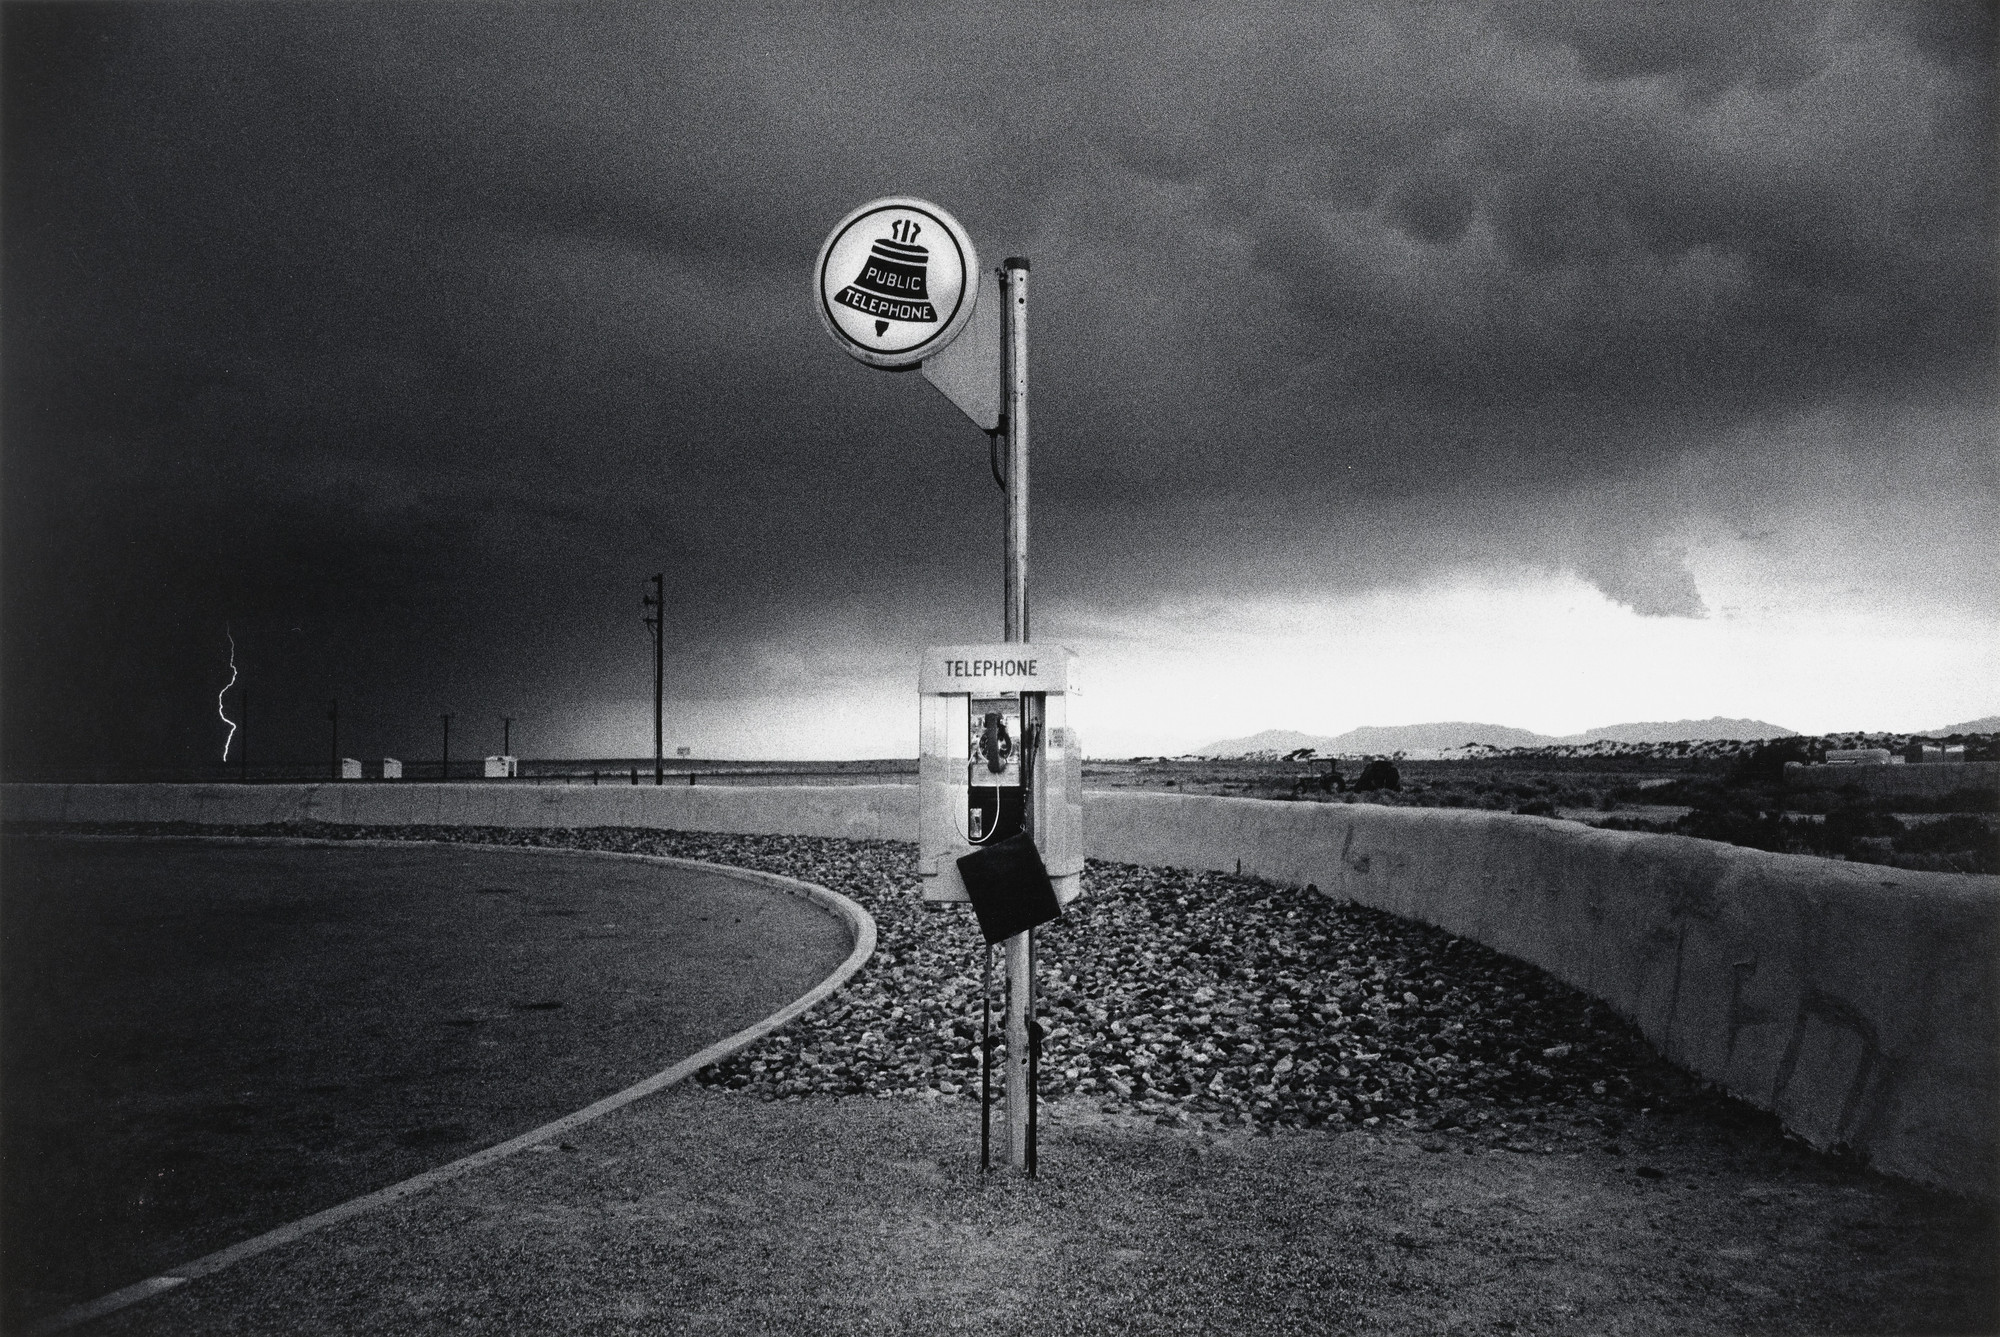 Ikko (Ikko Narahara). Highway Telephone and Lightning, New Mexico. 1972